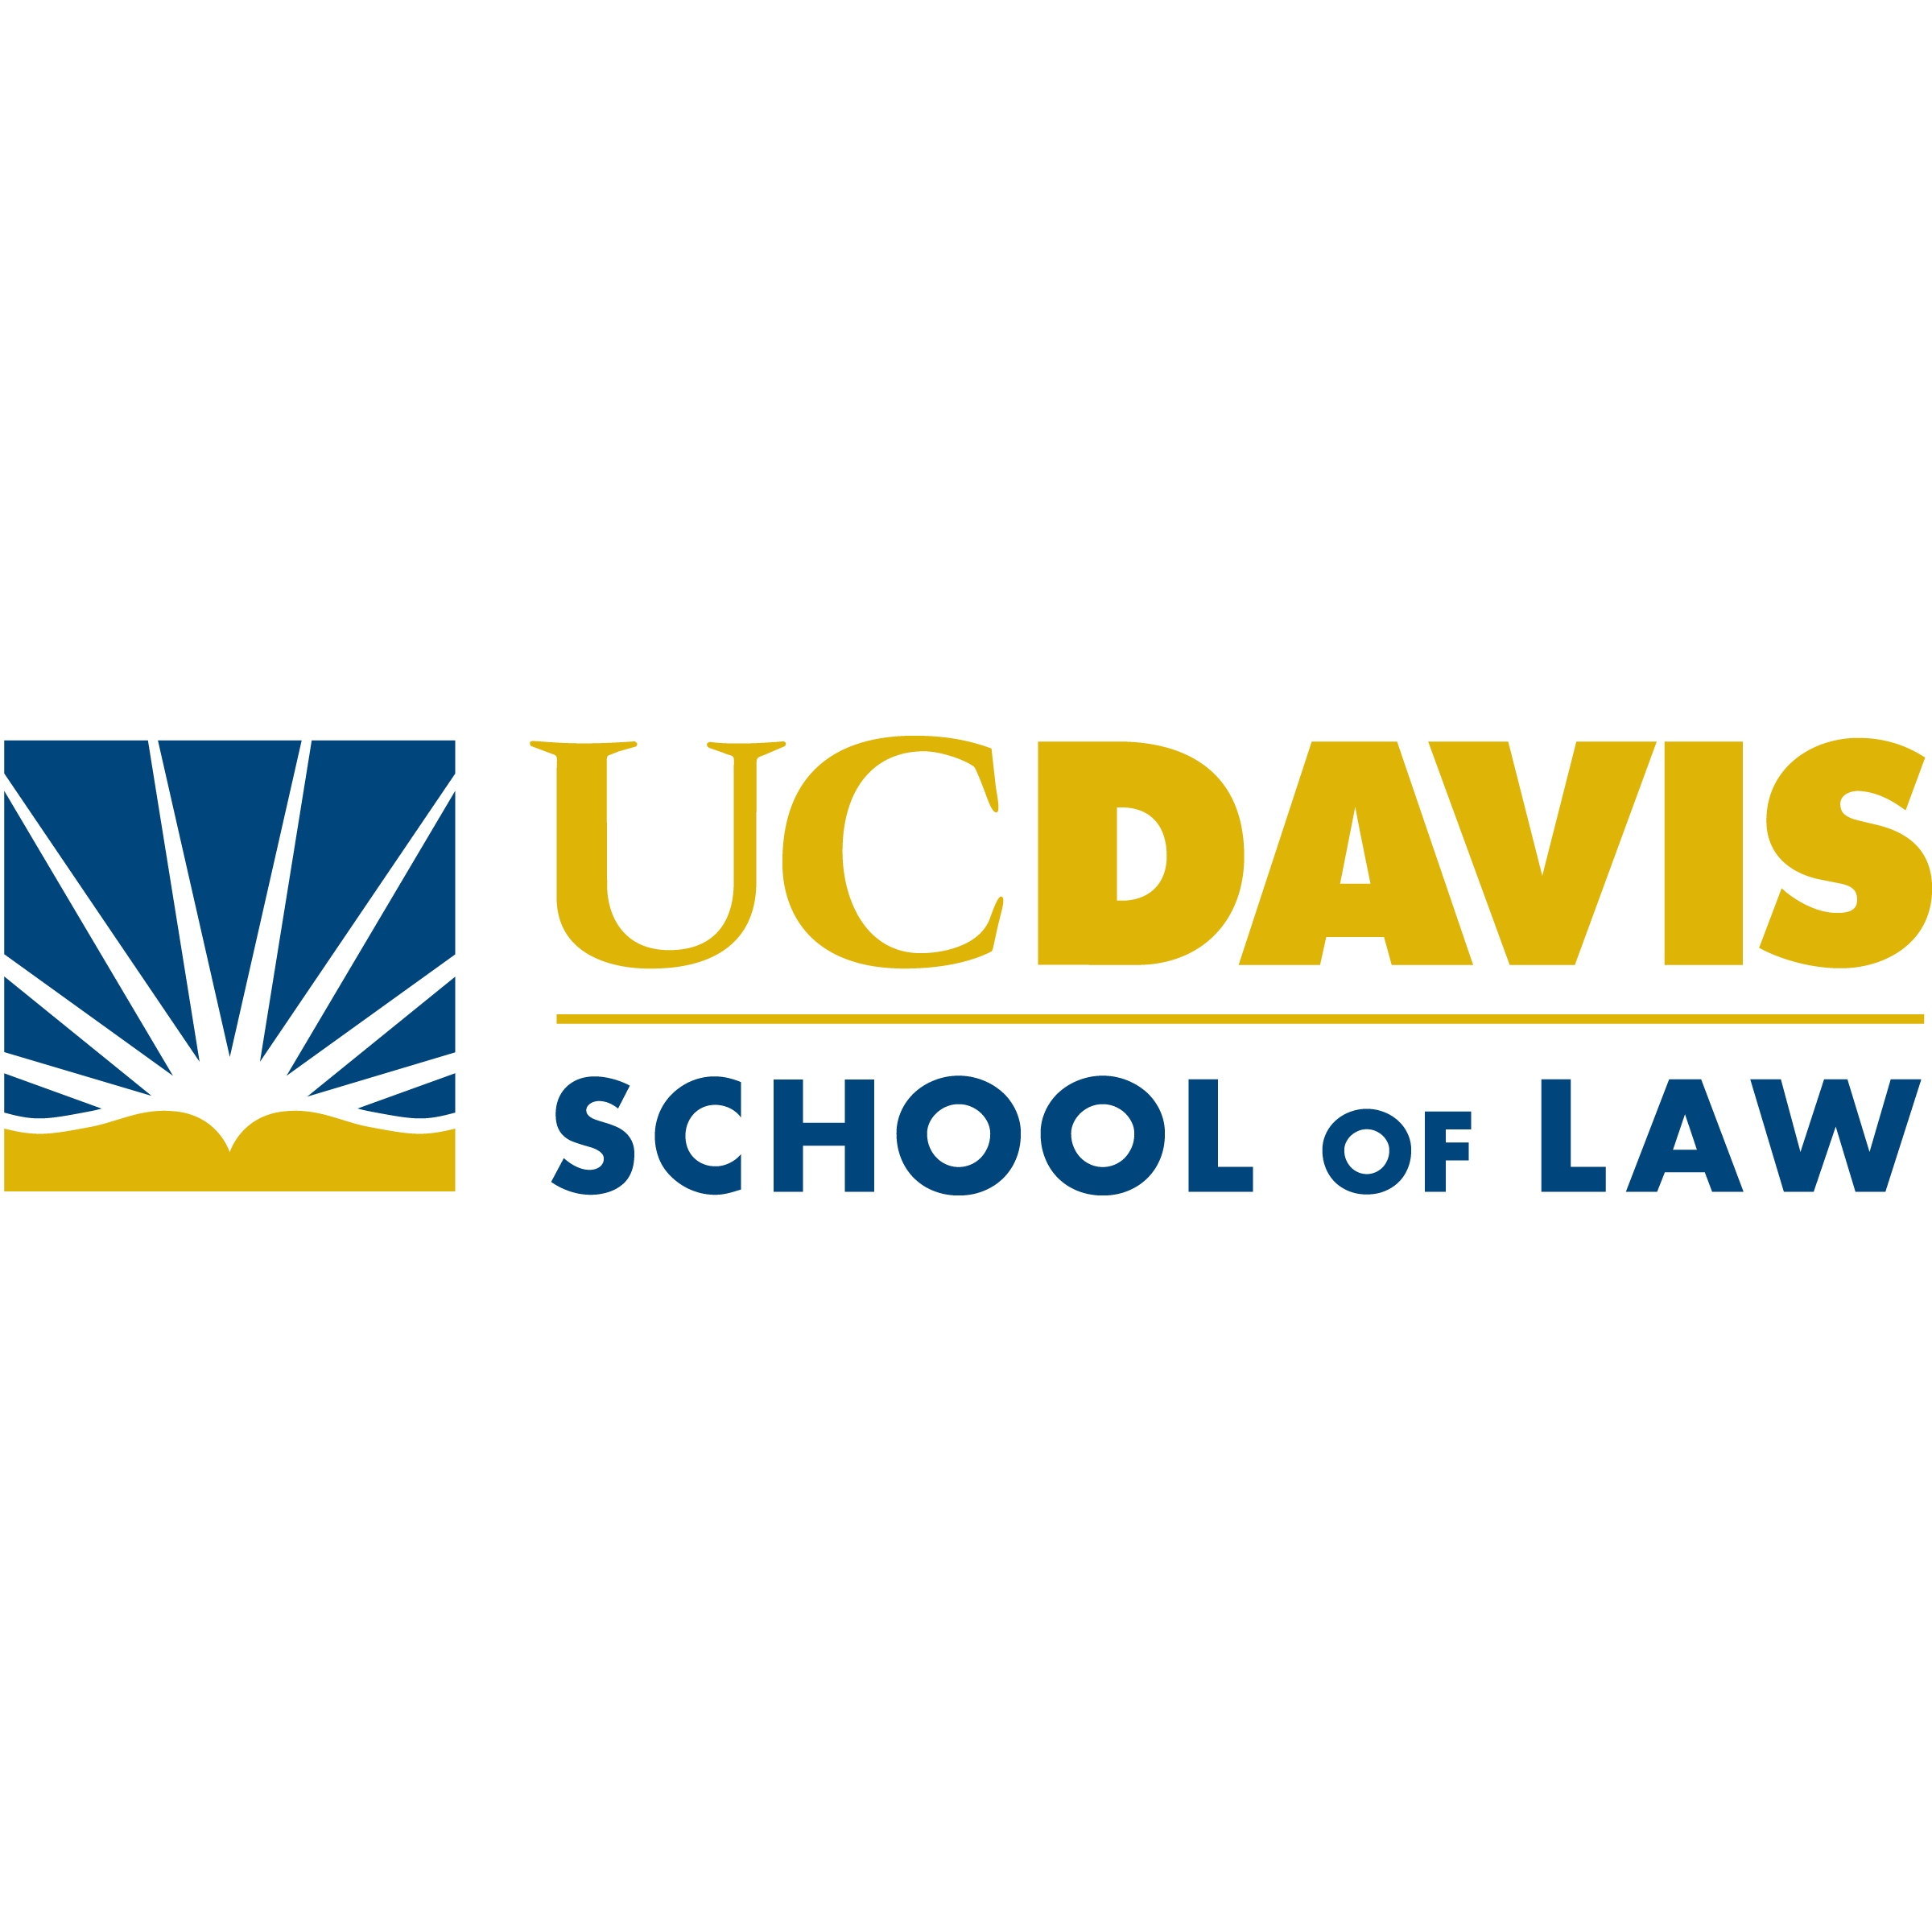 University of California Davis School of Law